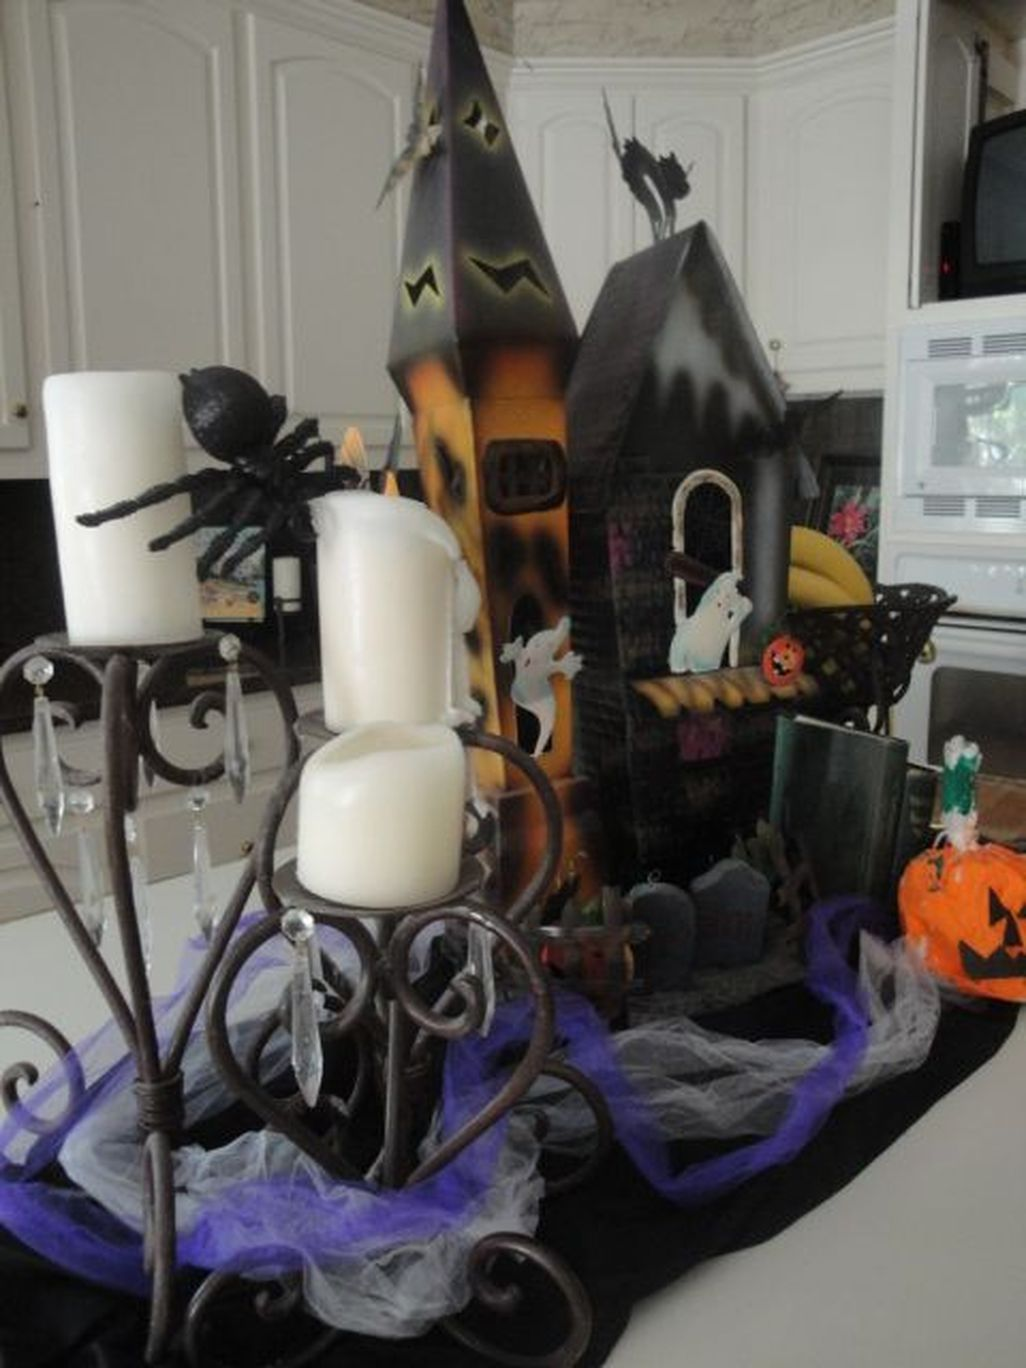 42 Nice Homemade Halloween Decorations Pinterest Homemade - Homemade Halloween Decorations